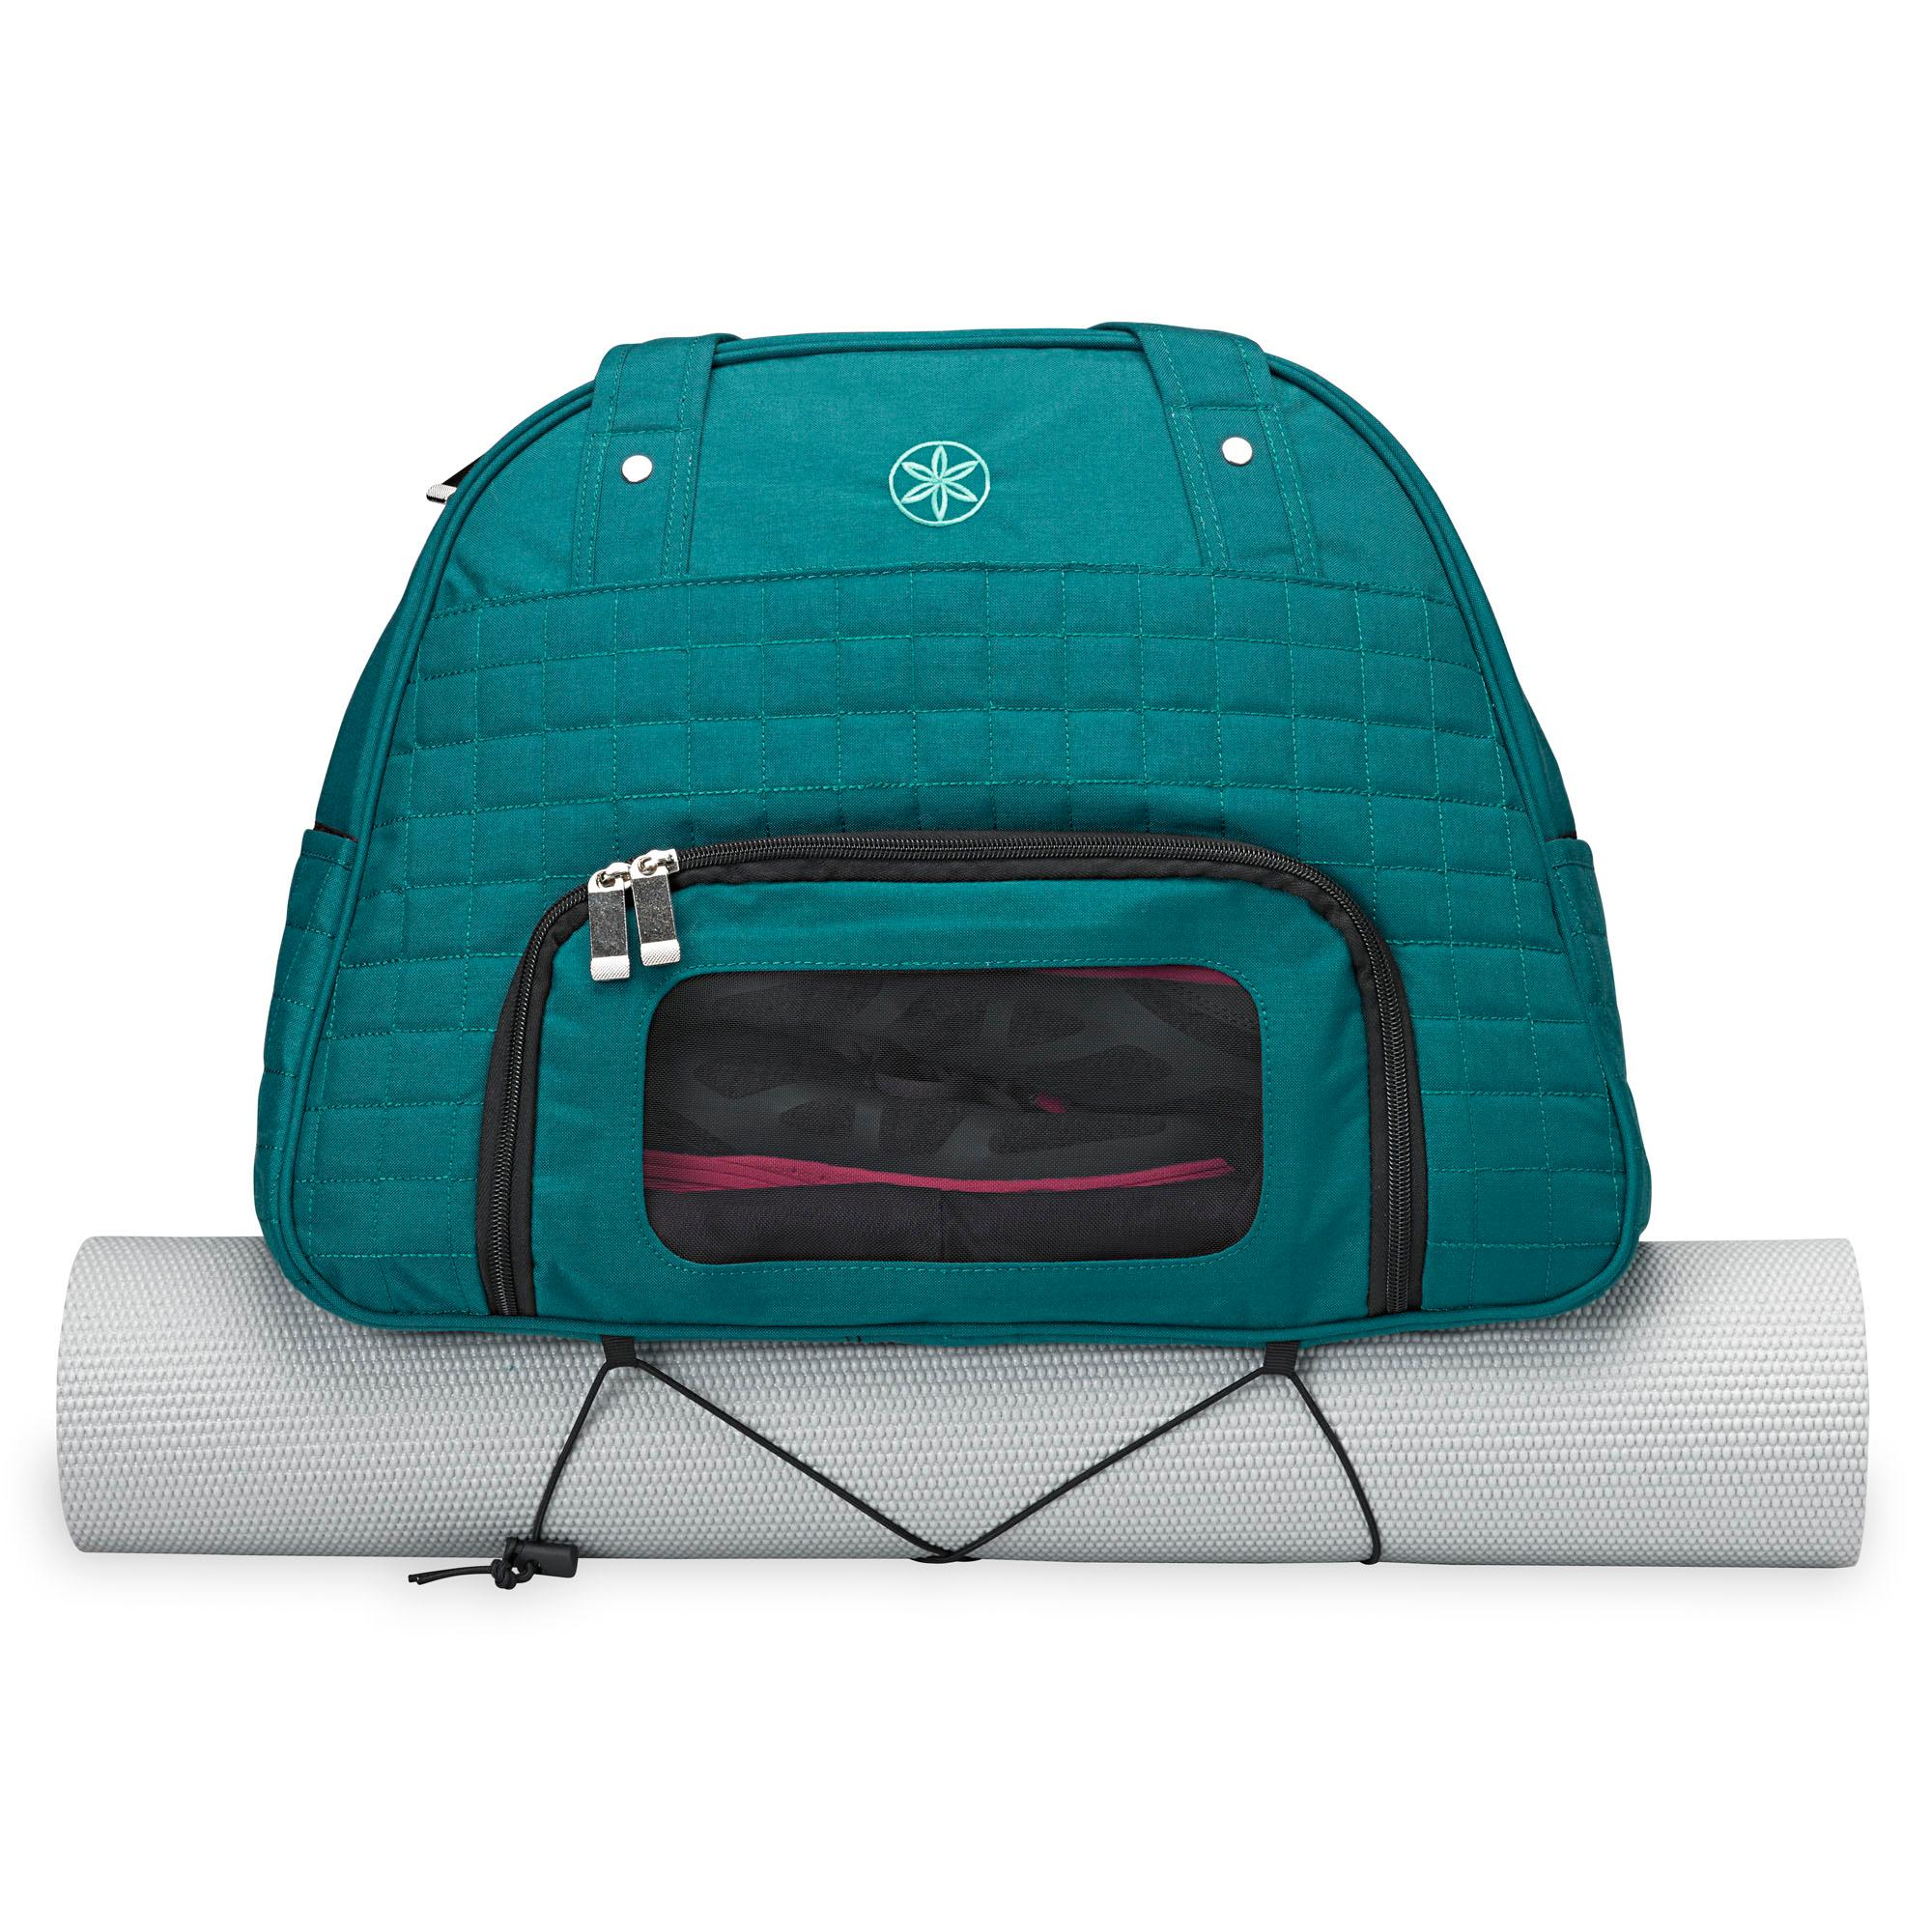 canada charcoal metro bags bag holder amazon dp mat view gaiam with gym larger yoga